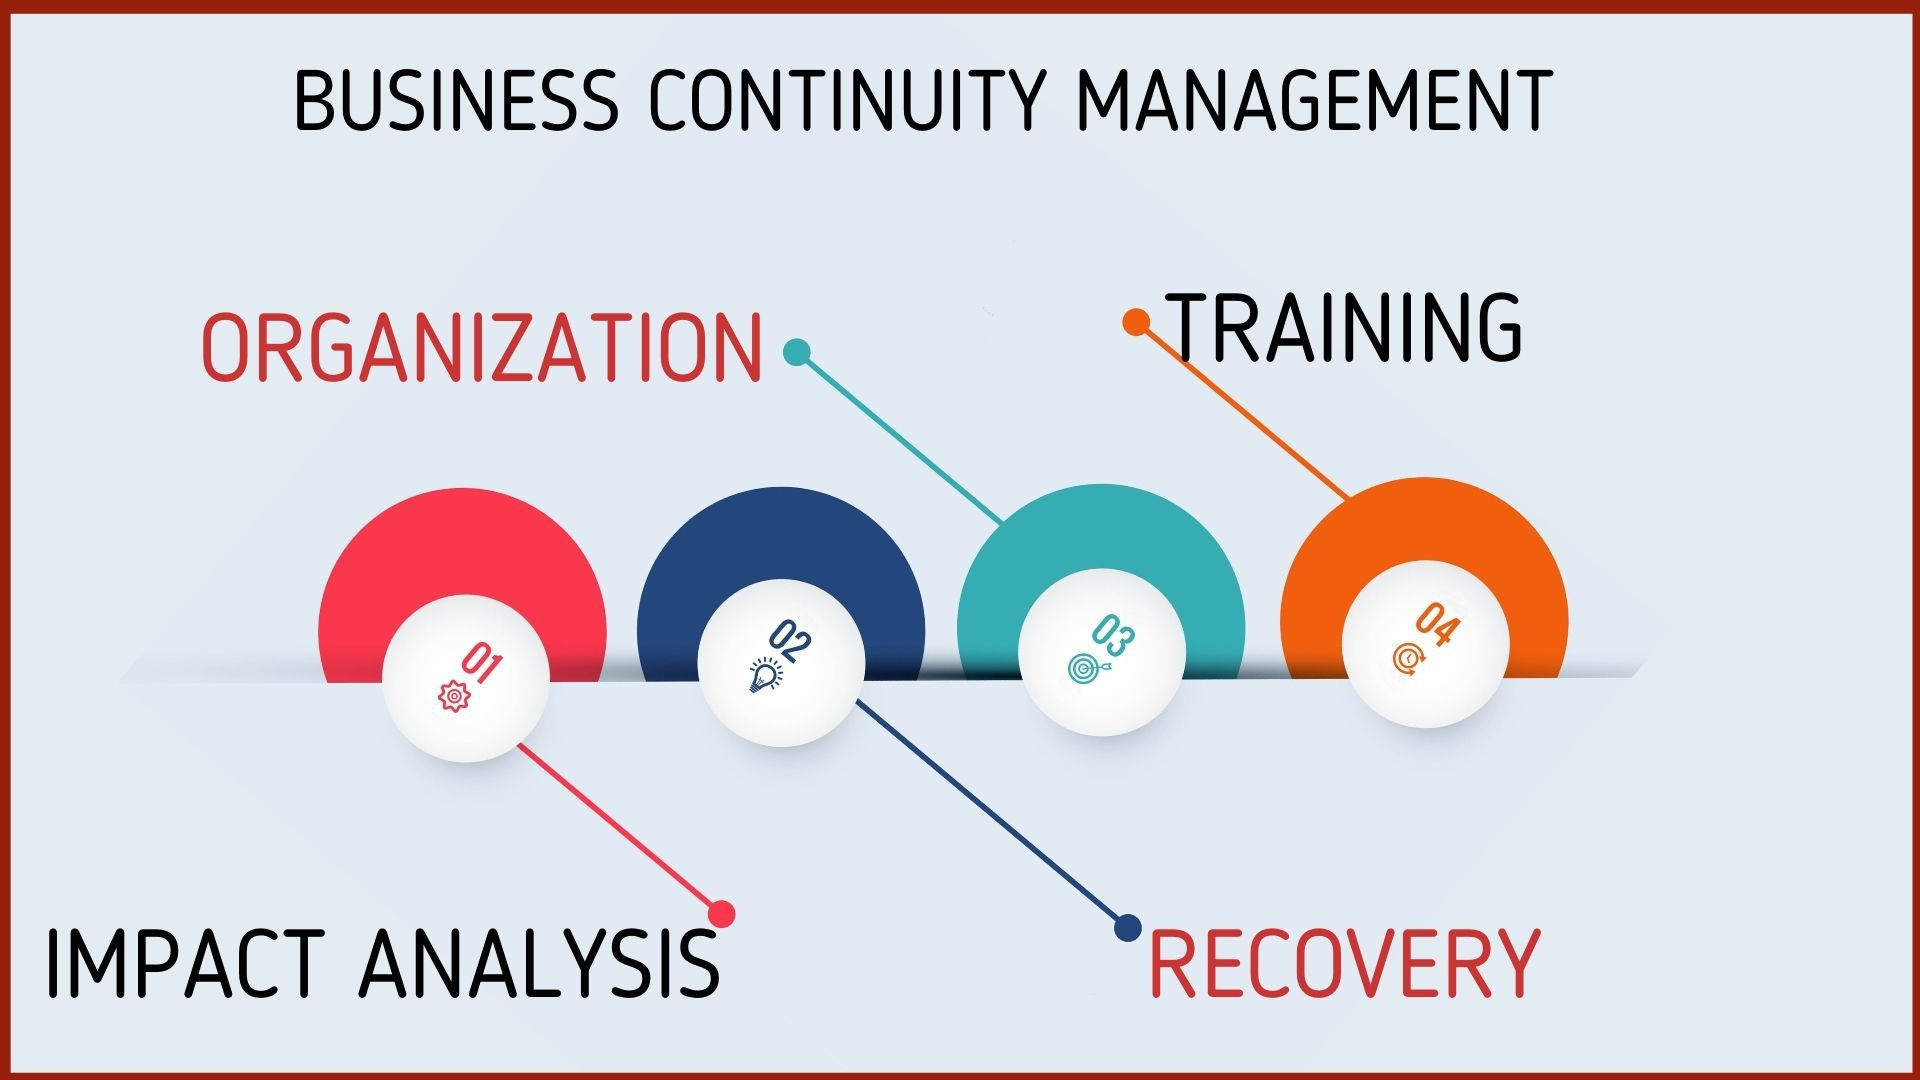 Elements of a Business Continuity Management